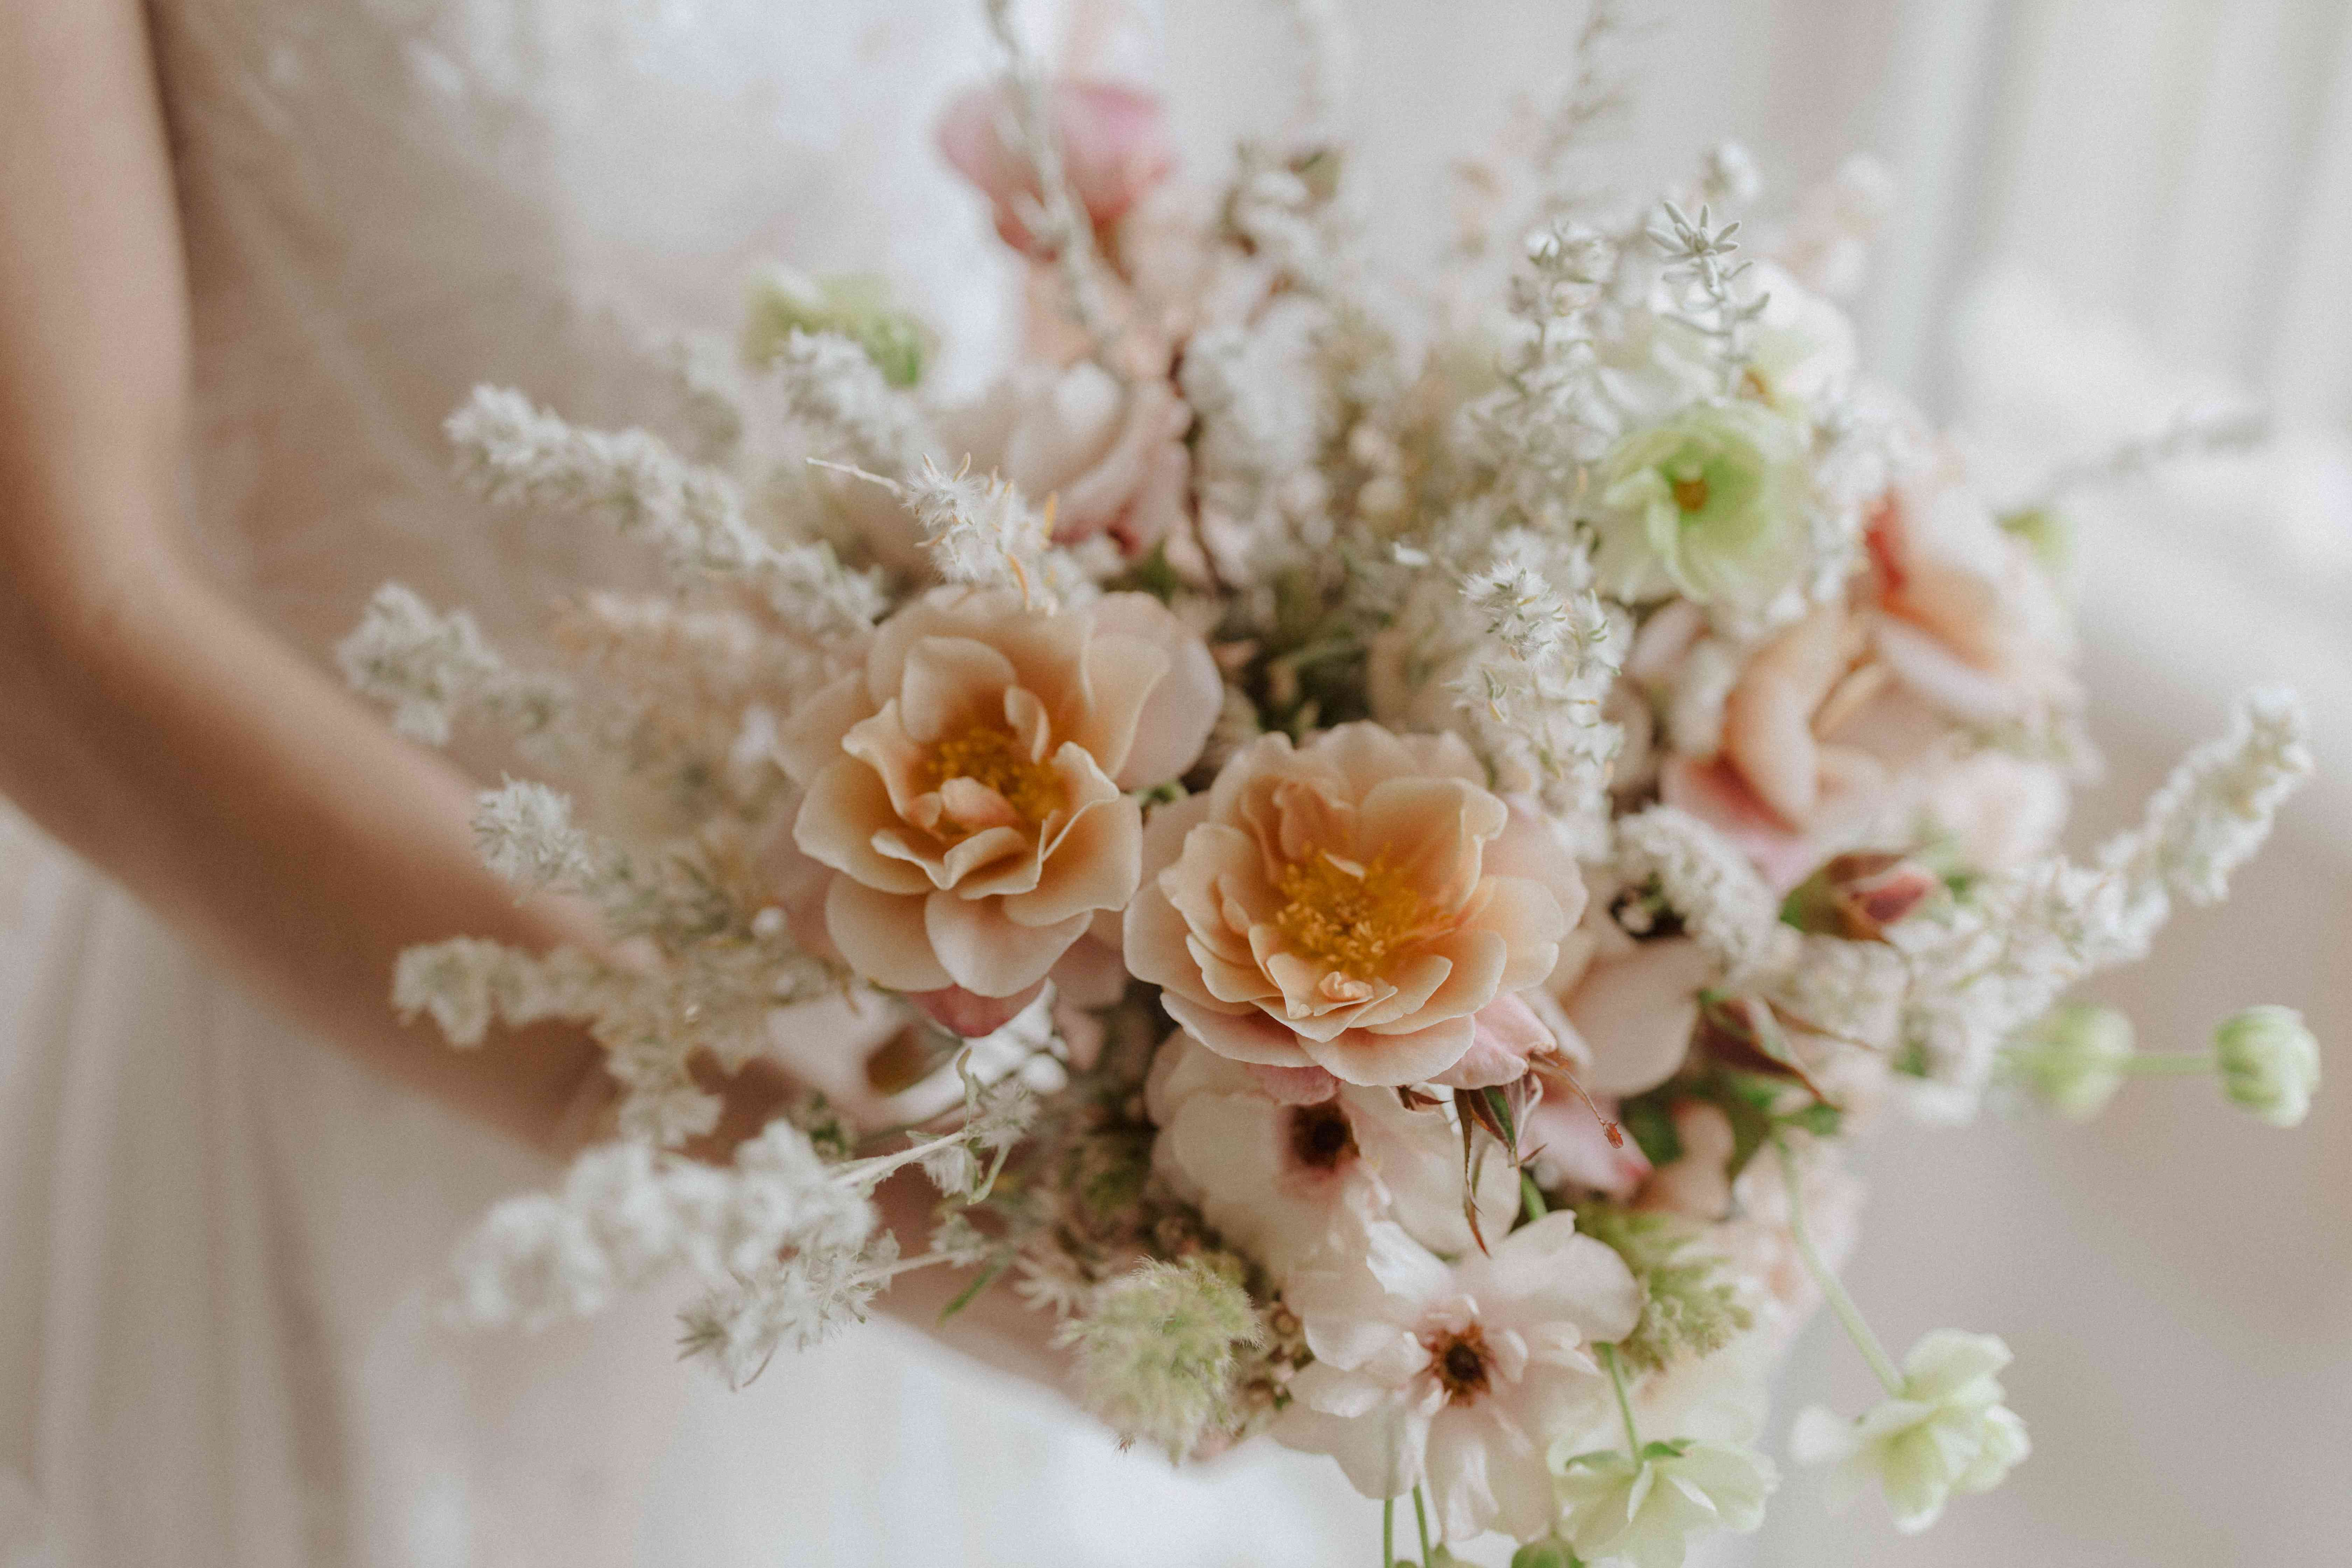 Bouquet of peach, pink, and white flowers